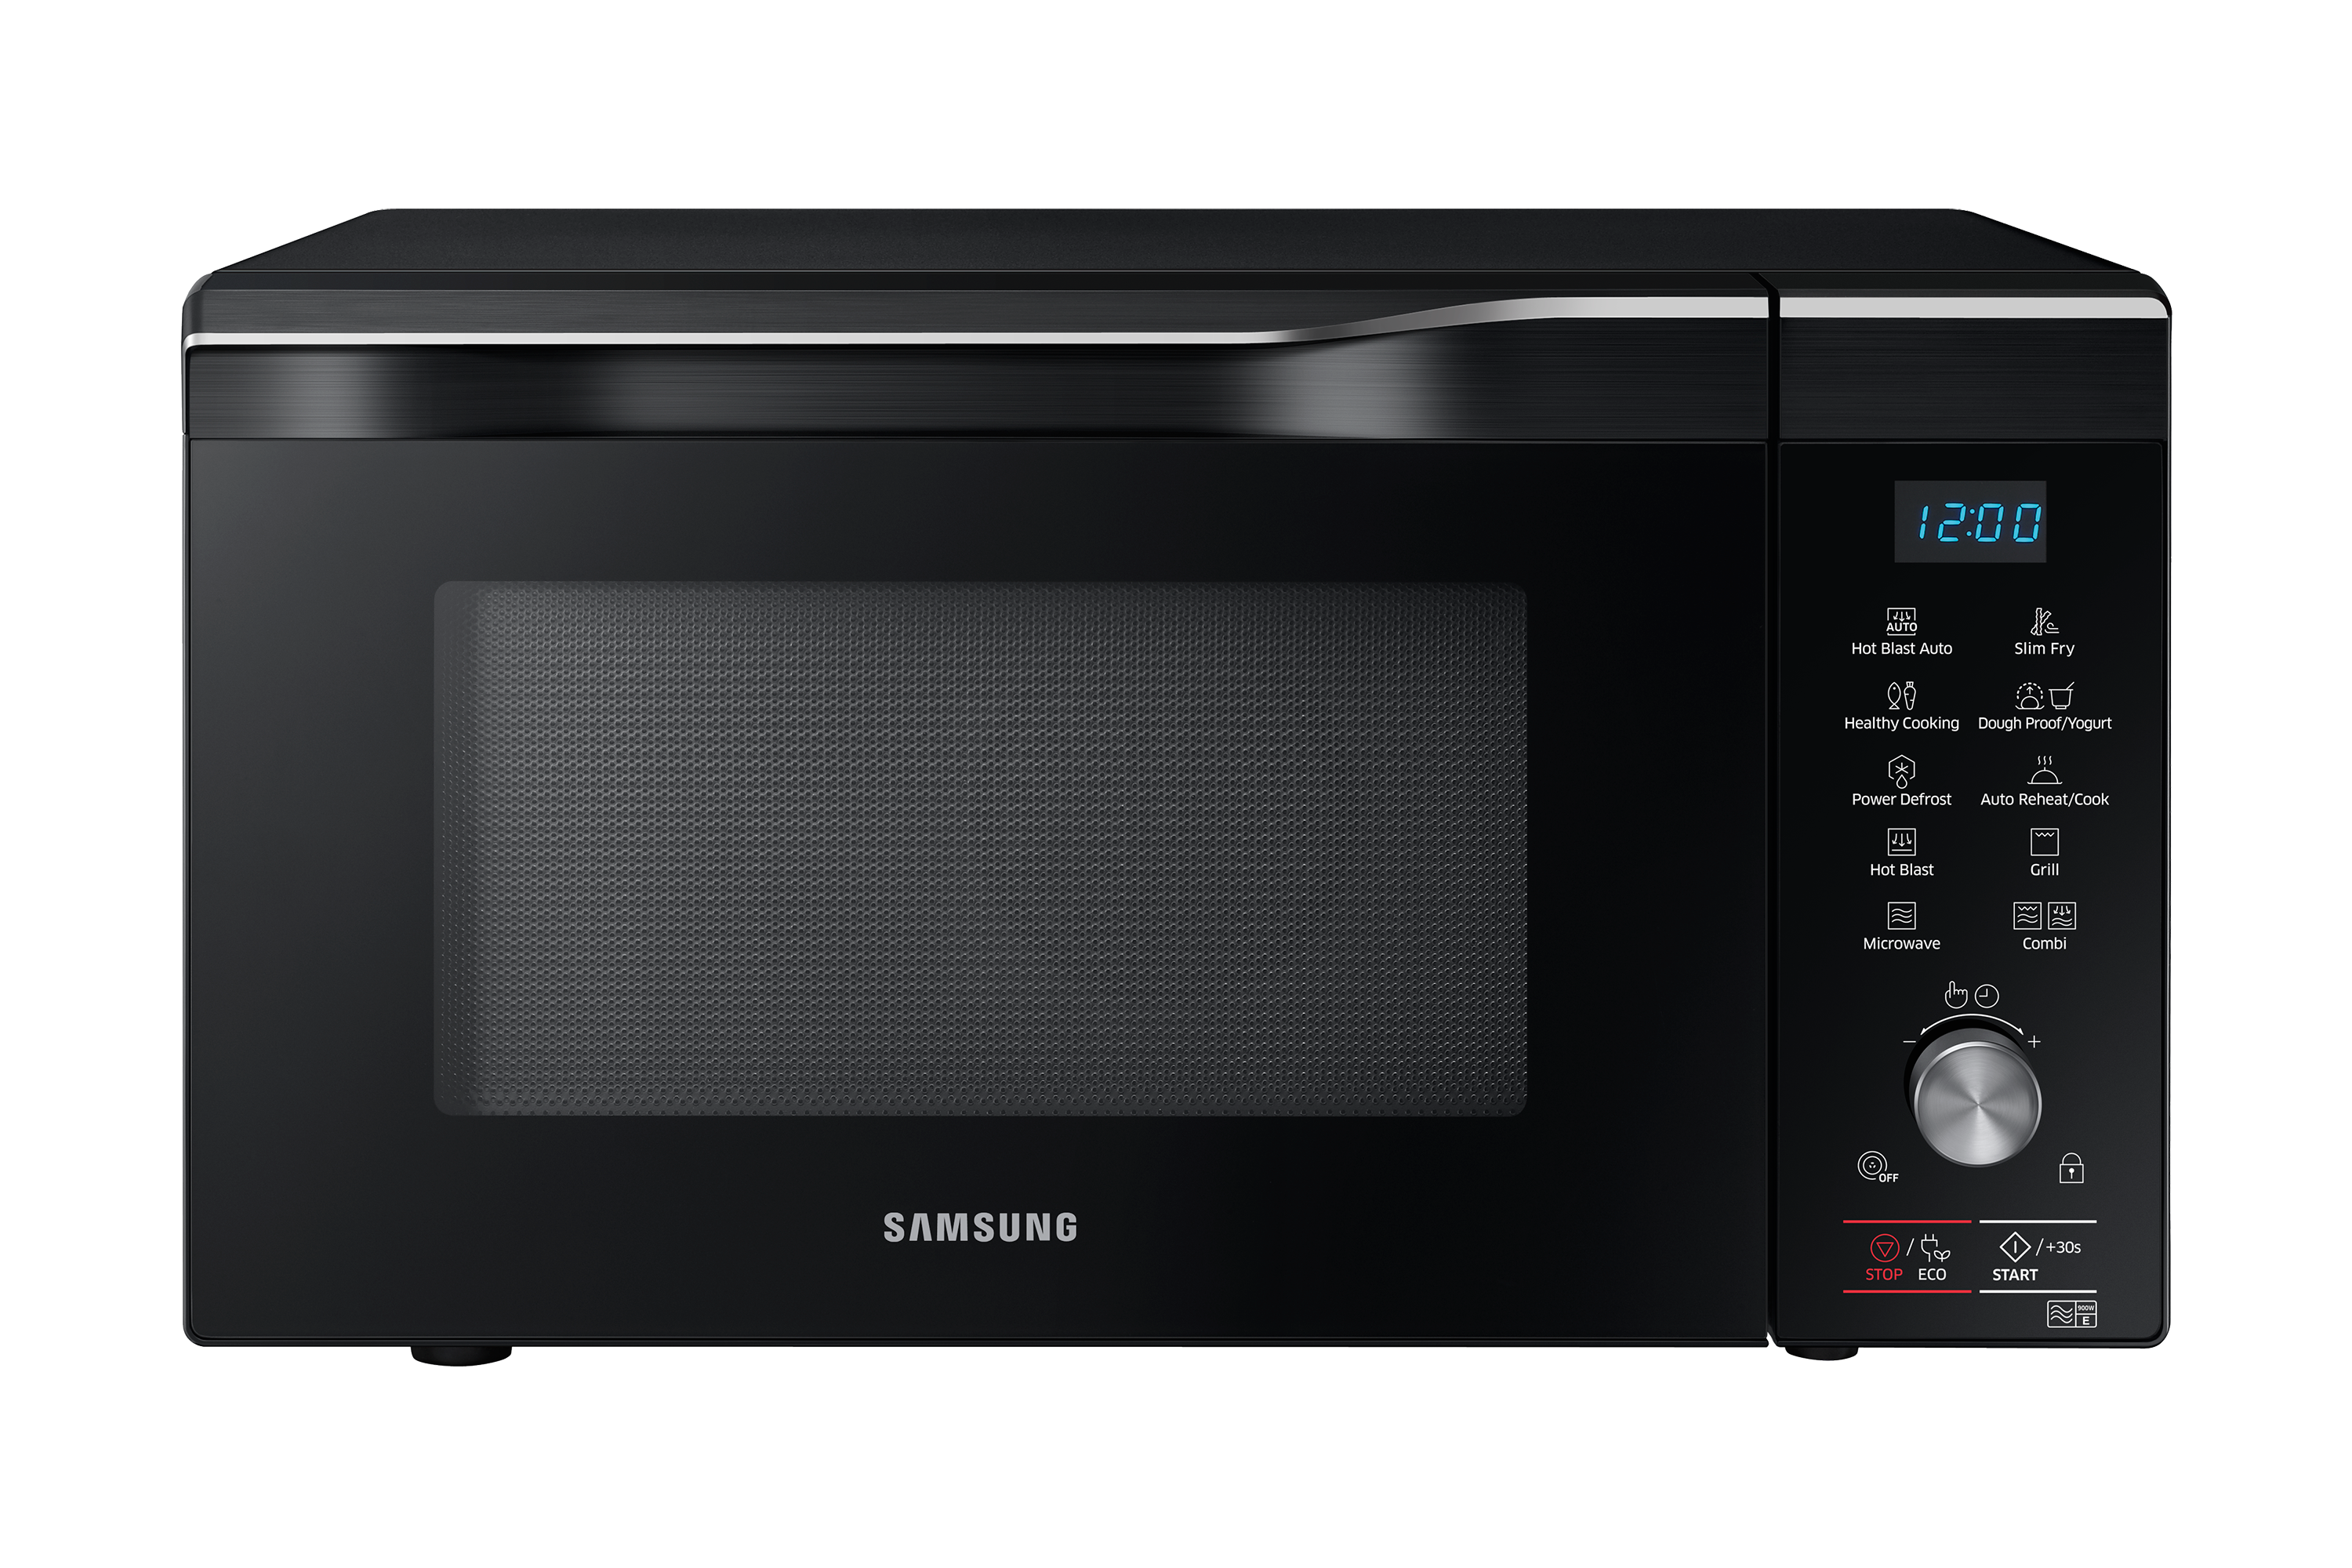 MW7000K Convection Microwave Oven with HotBlast™, 32L